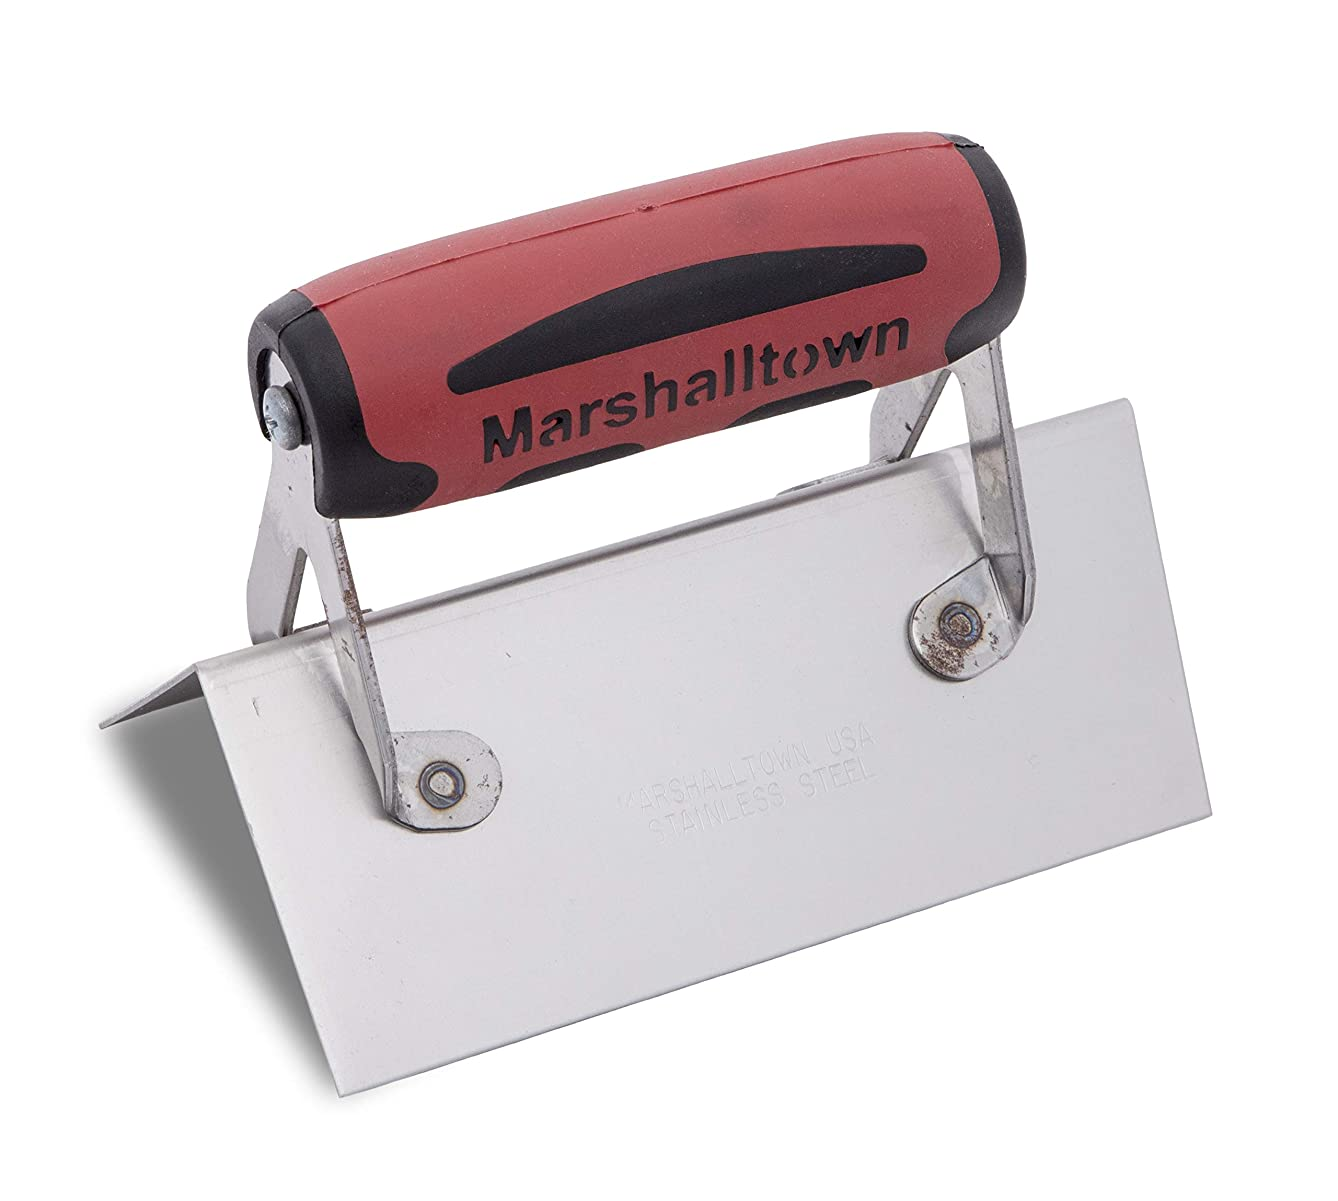 MARSHALLTOWN The Premier Line 67SSD 6-Inch by 2-1/2-Inch Outside Corner Trowel with DuraSoft Handle